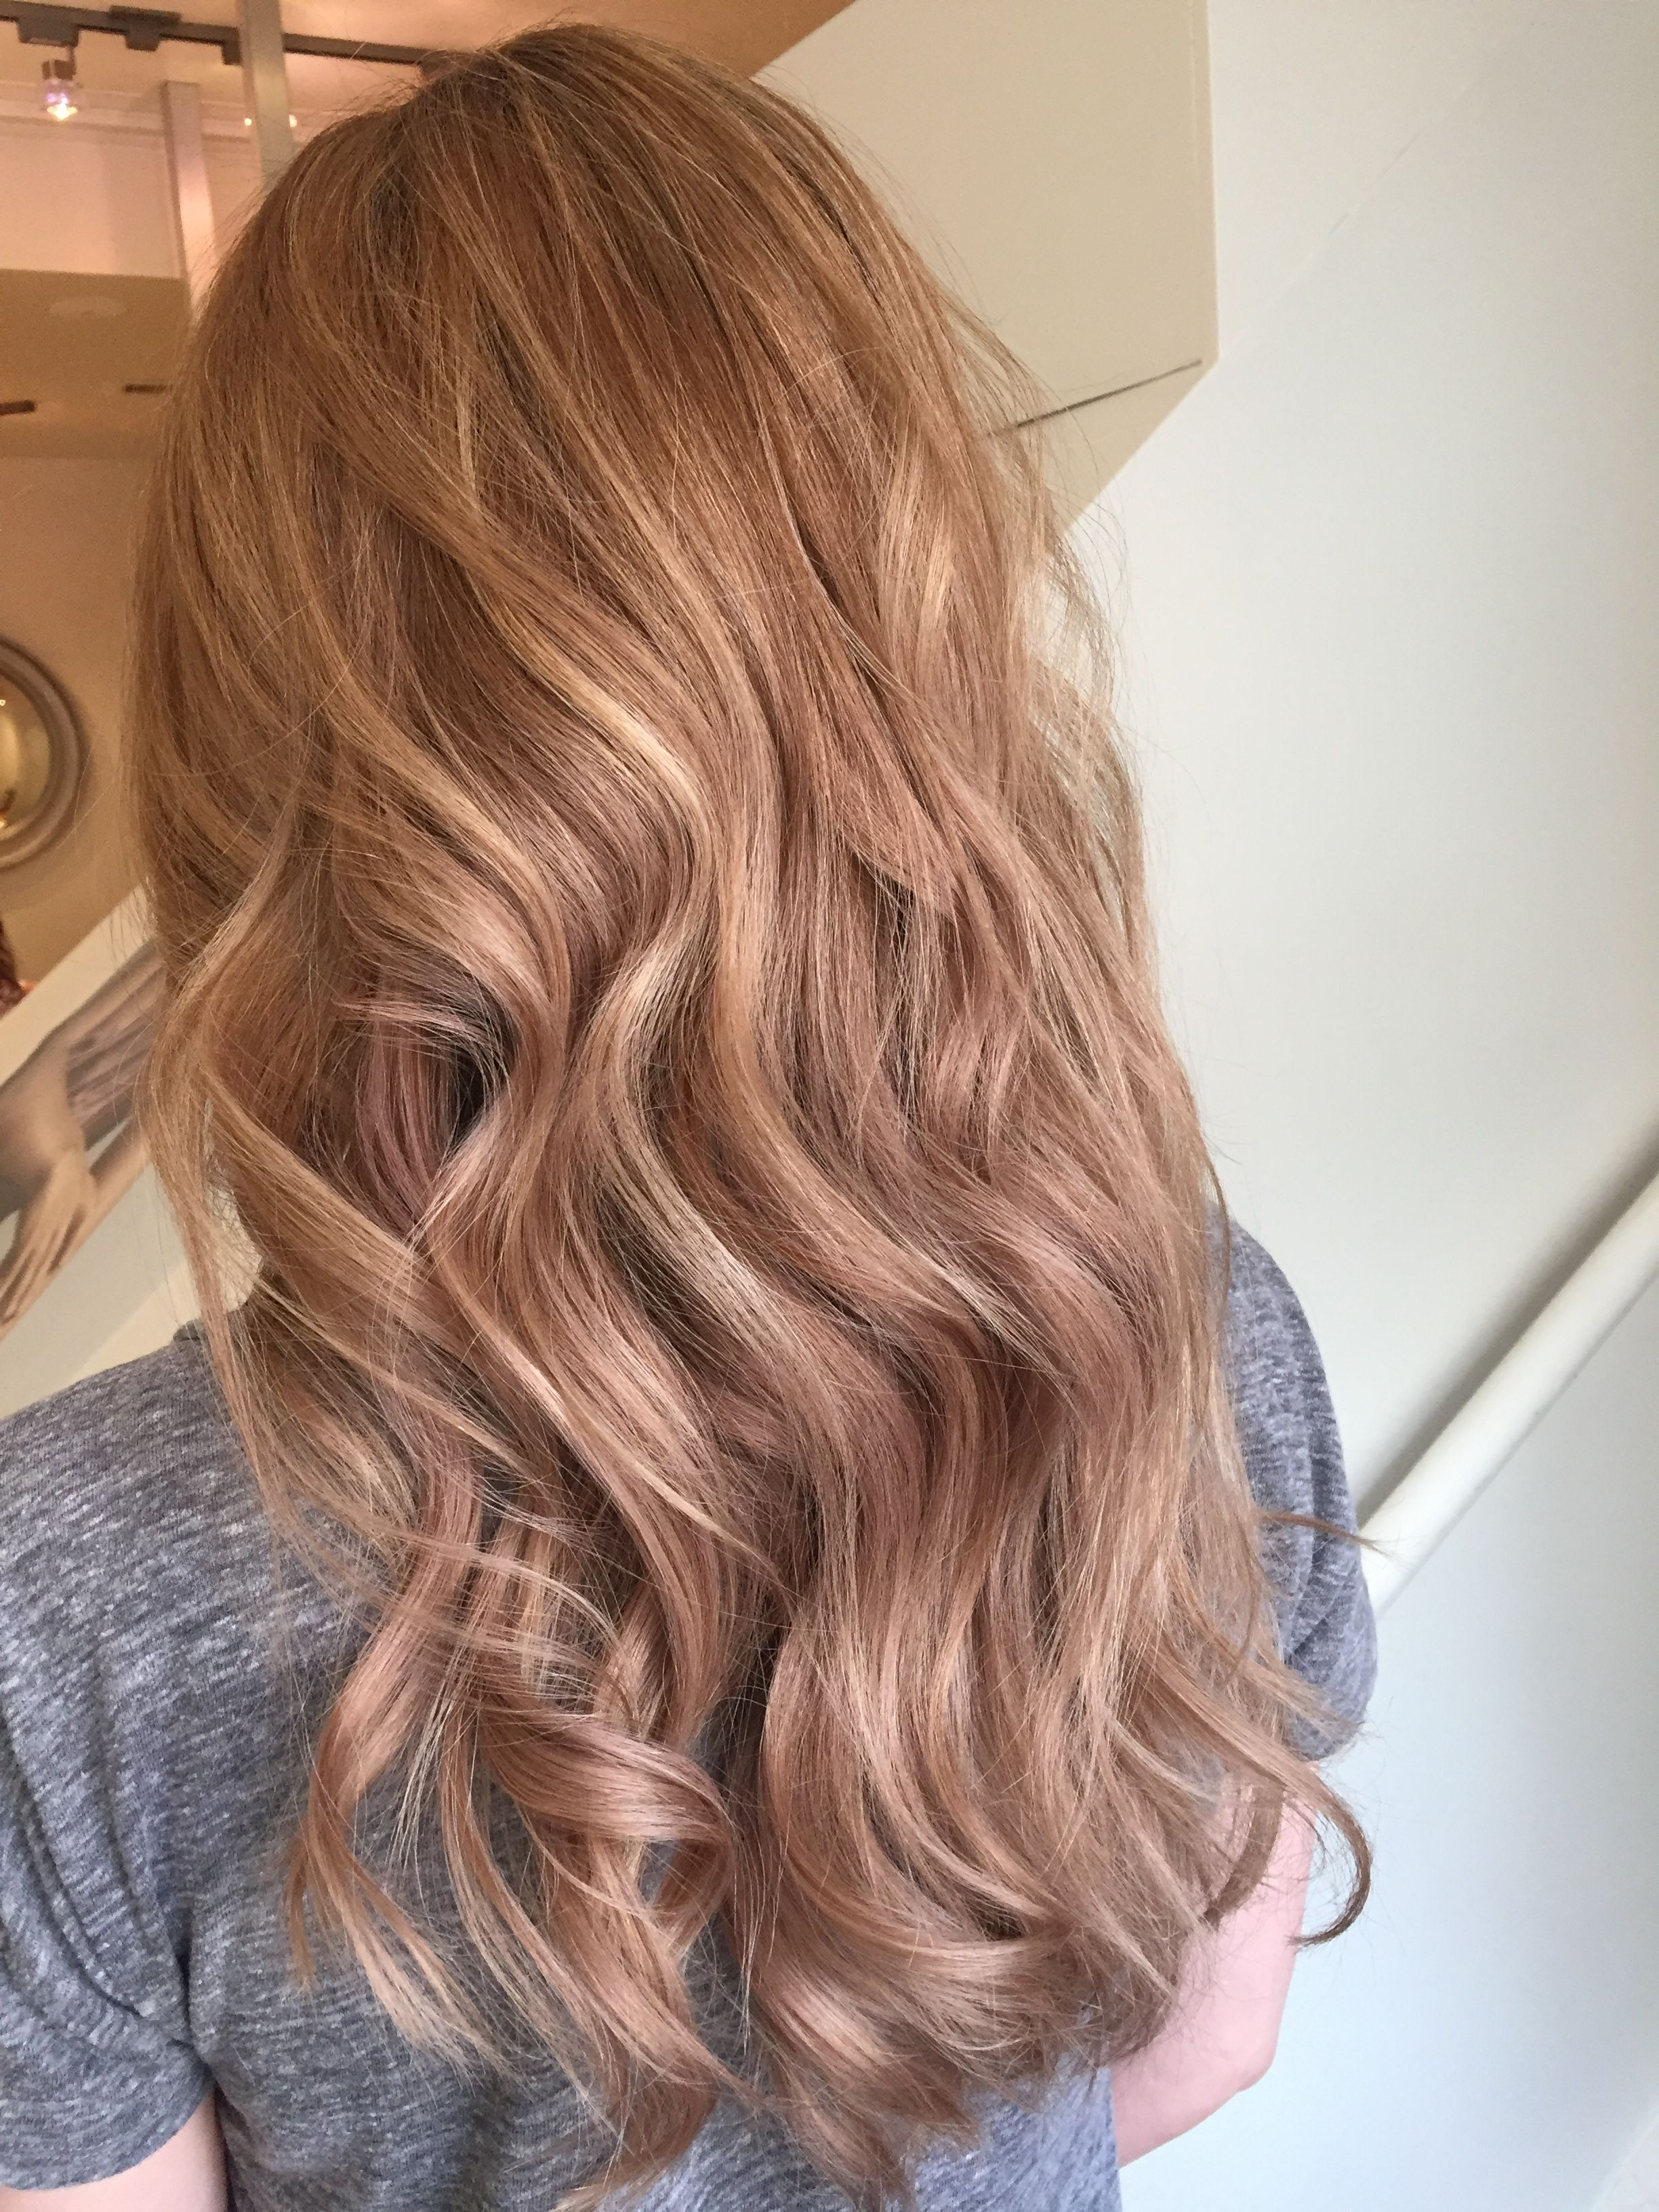 Rose Gold Hair Color Caramel Hair Color Light Brown Honey Hair Color